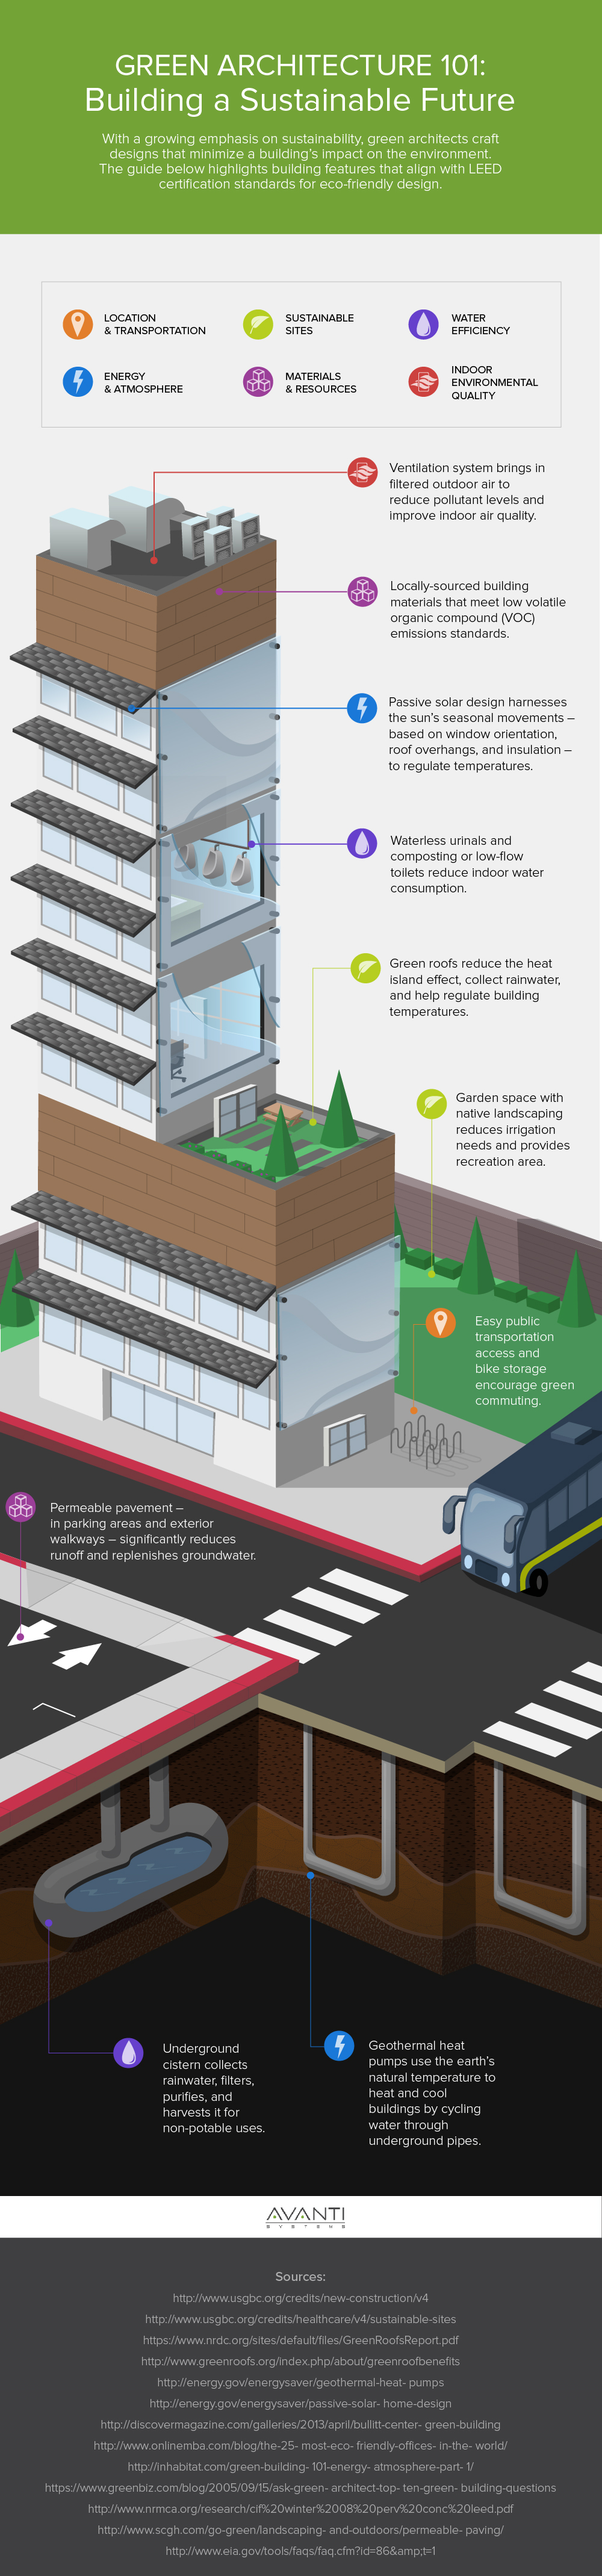 green architecture sustainable buildings